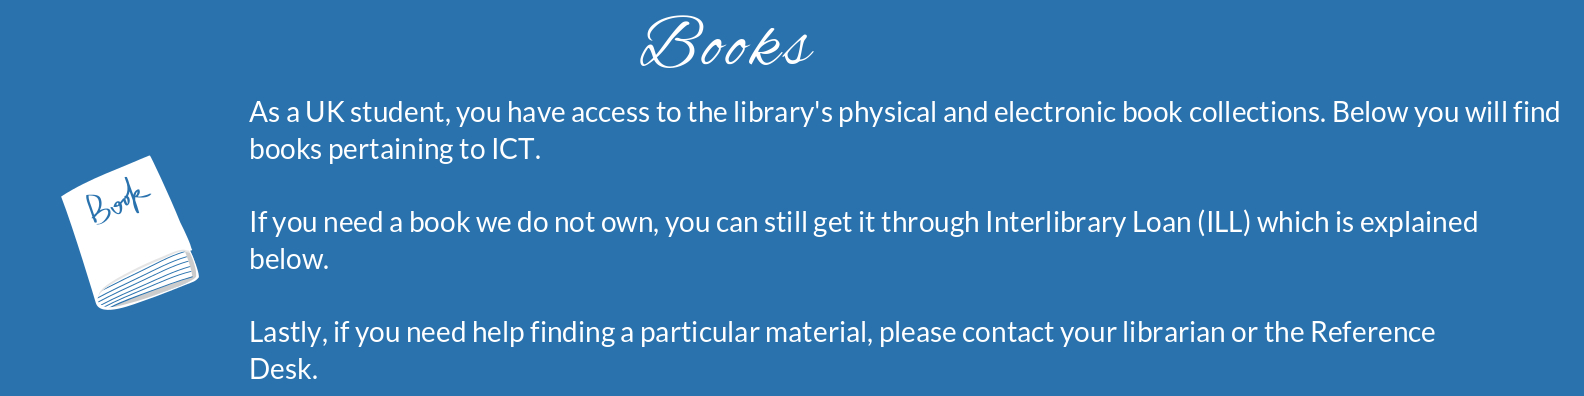 You have access to the library's physical and electronic books. If you need help finding a particular resource, contact your librarian or the reference desk.